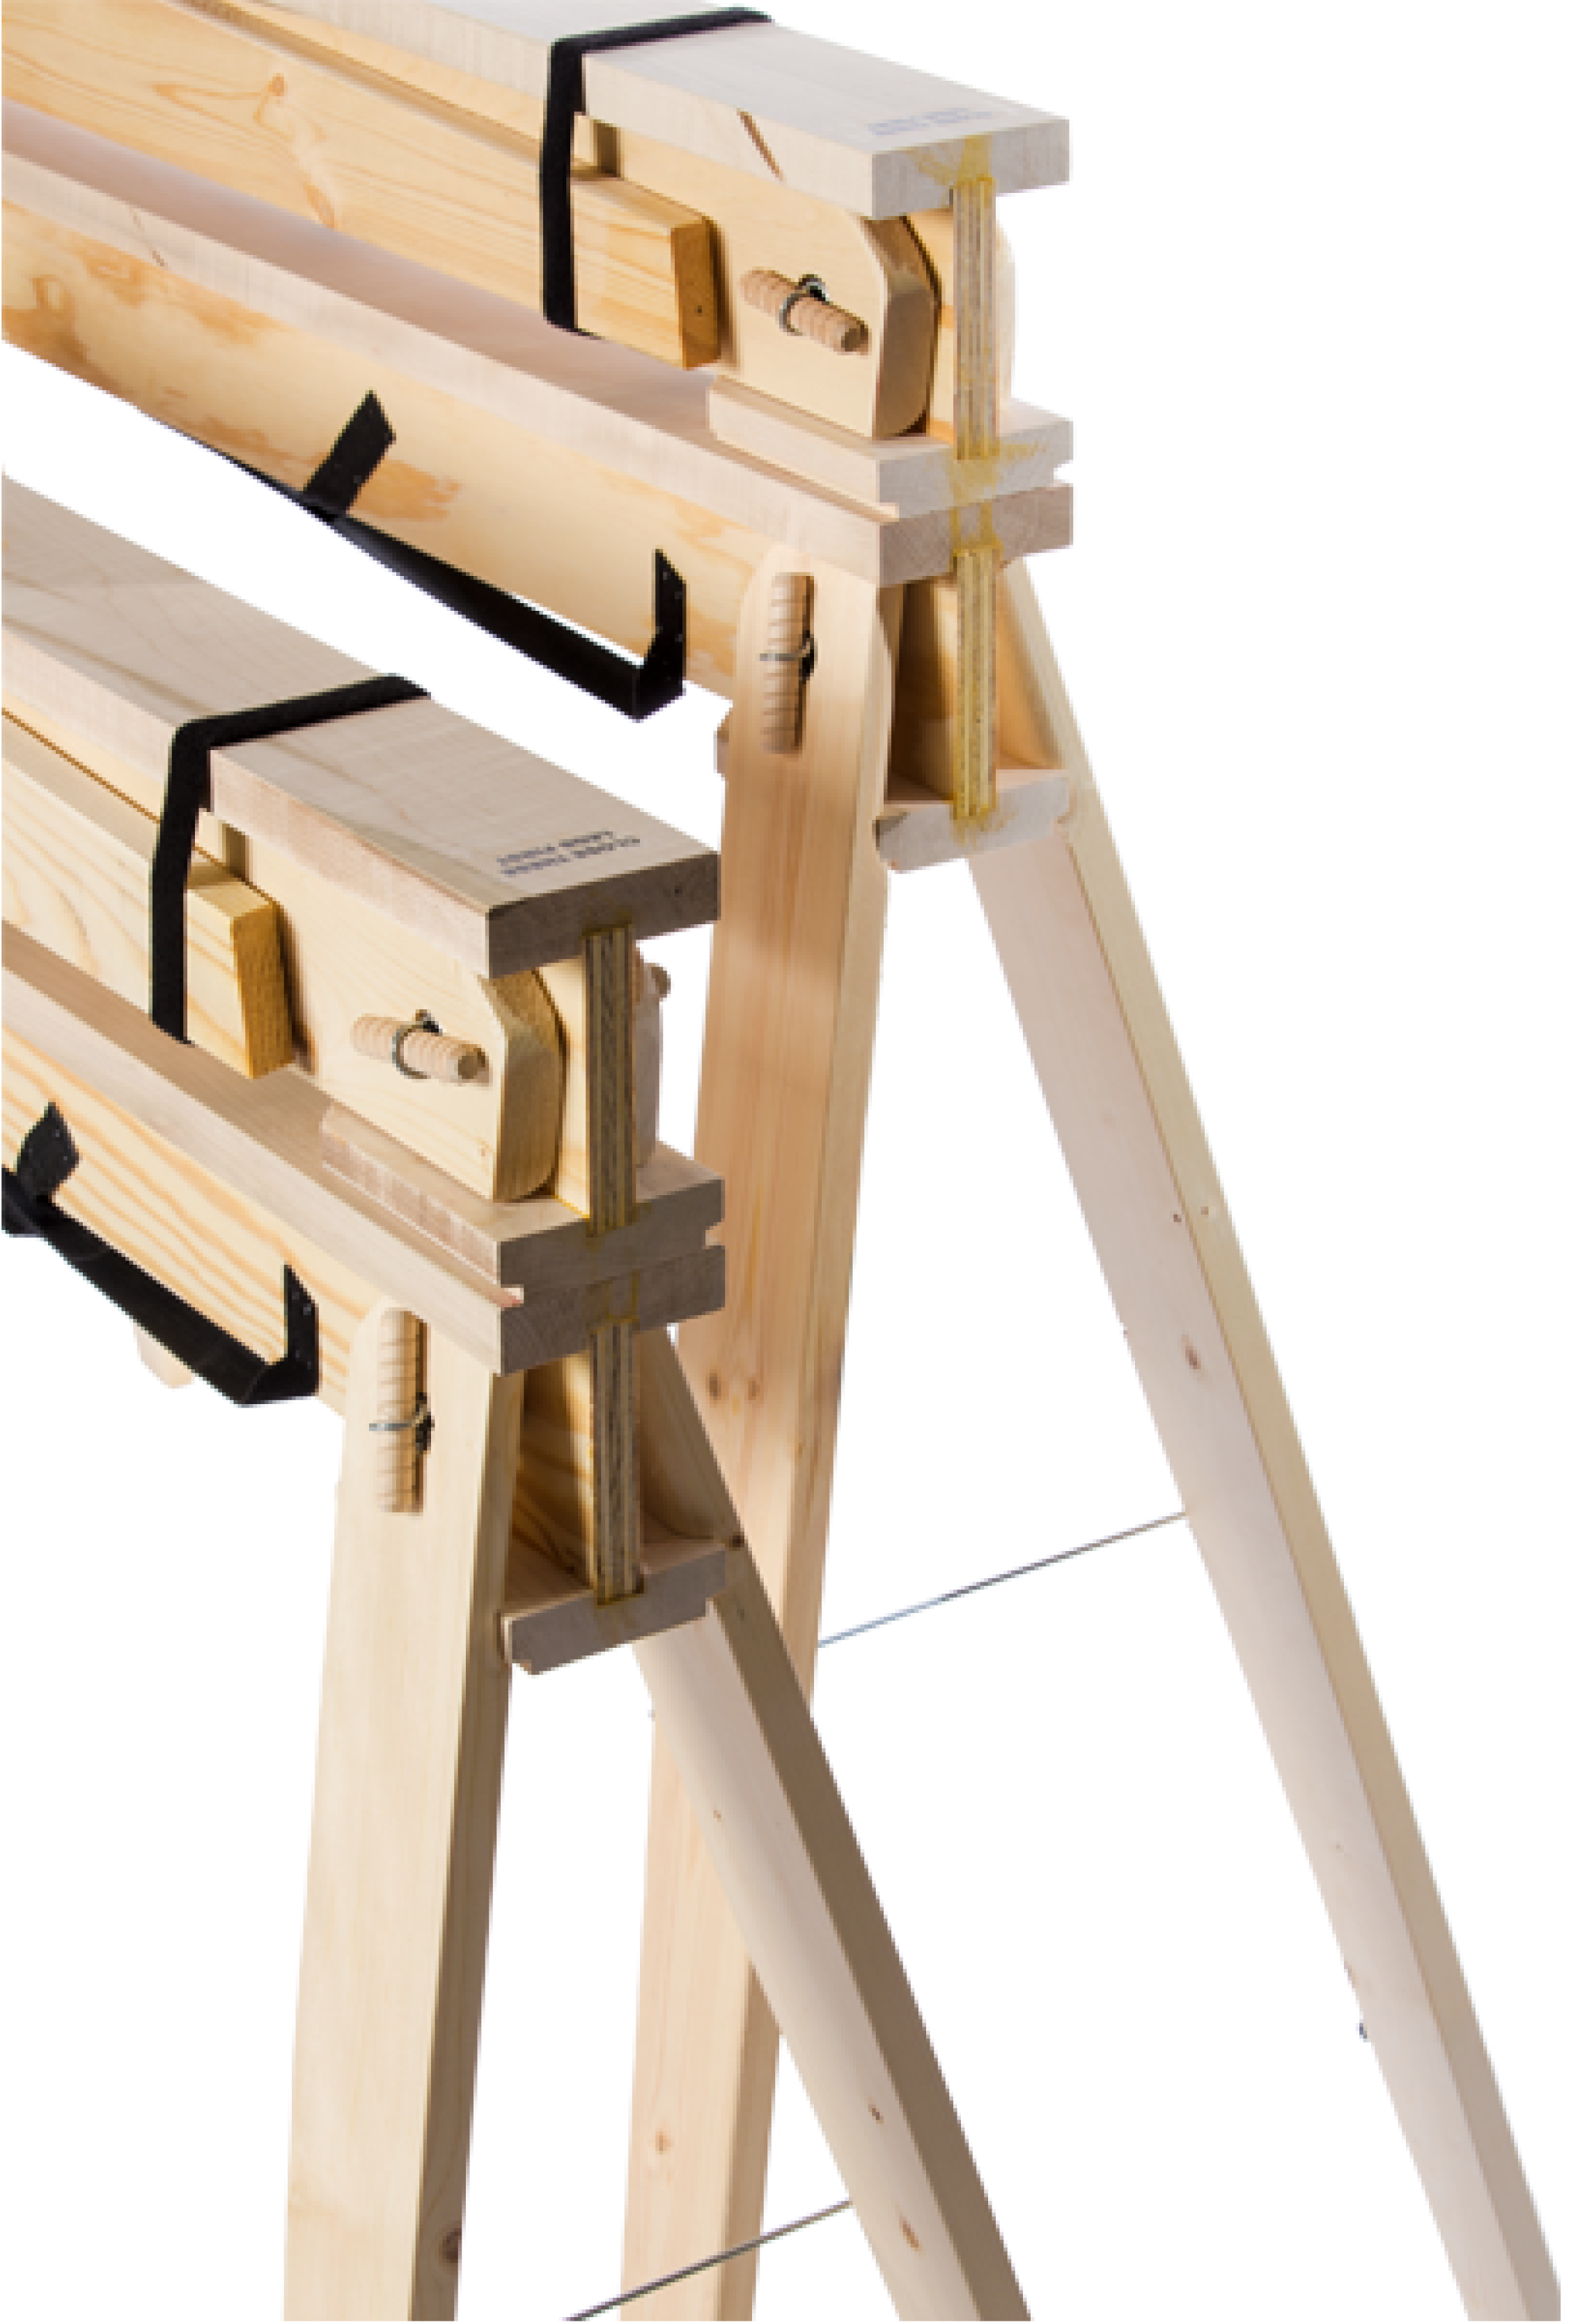 Stacked Hide-A-Horse Folding Sawhorses